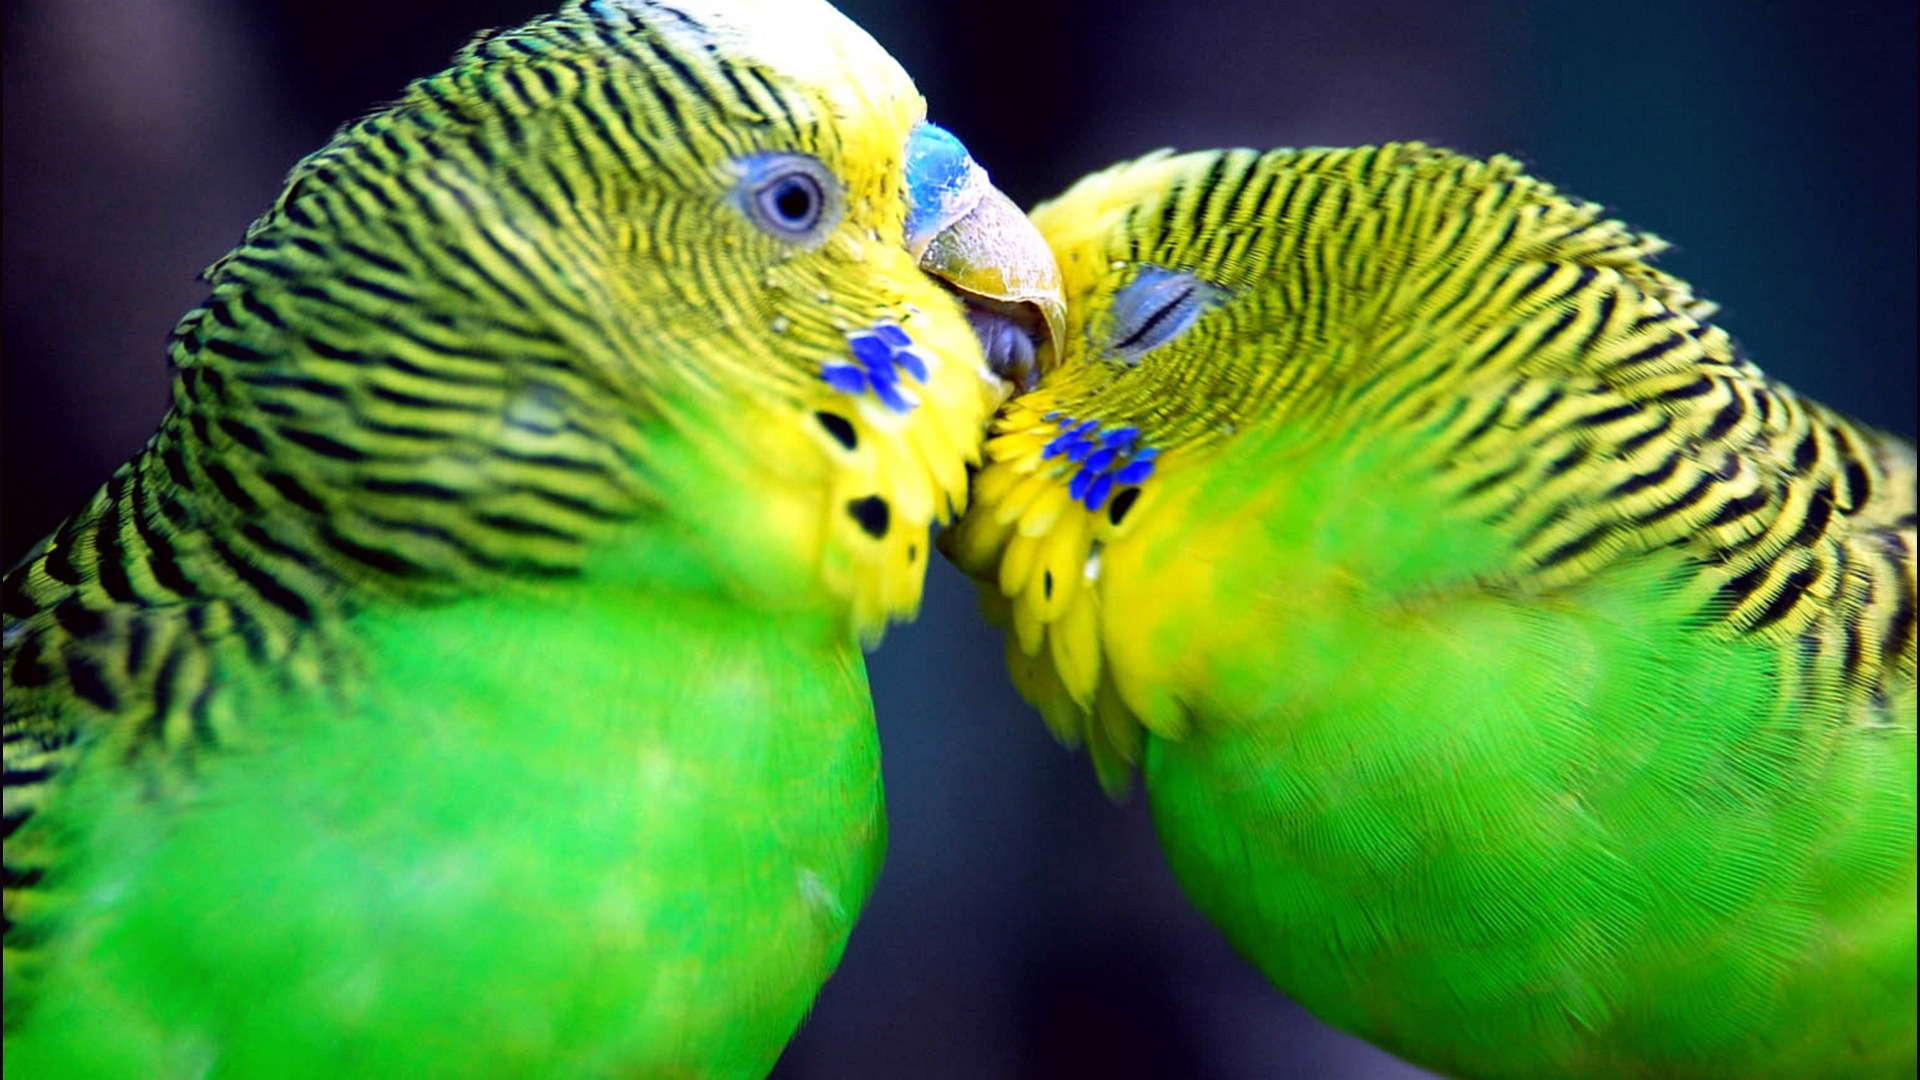 Cool Wallpaper Love Parrot - parrots_in_love_wallpaper_parrots_animals_354  Perfect Image Reference_49468.jpg